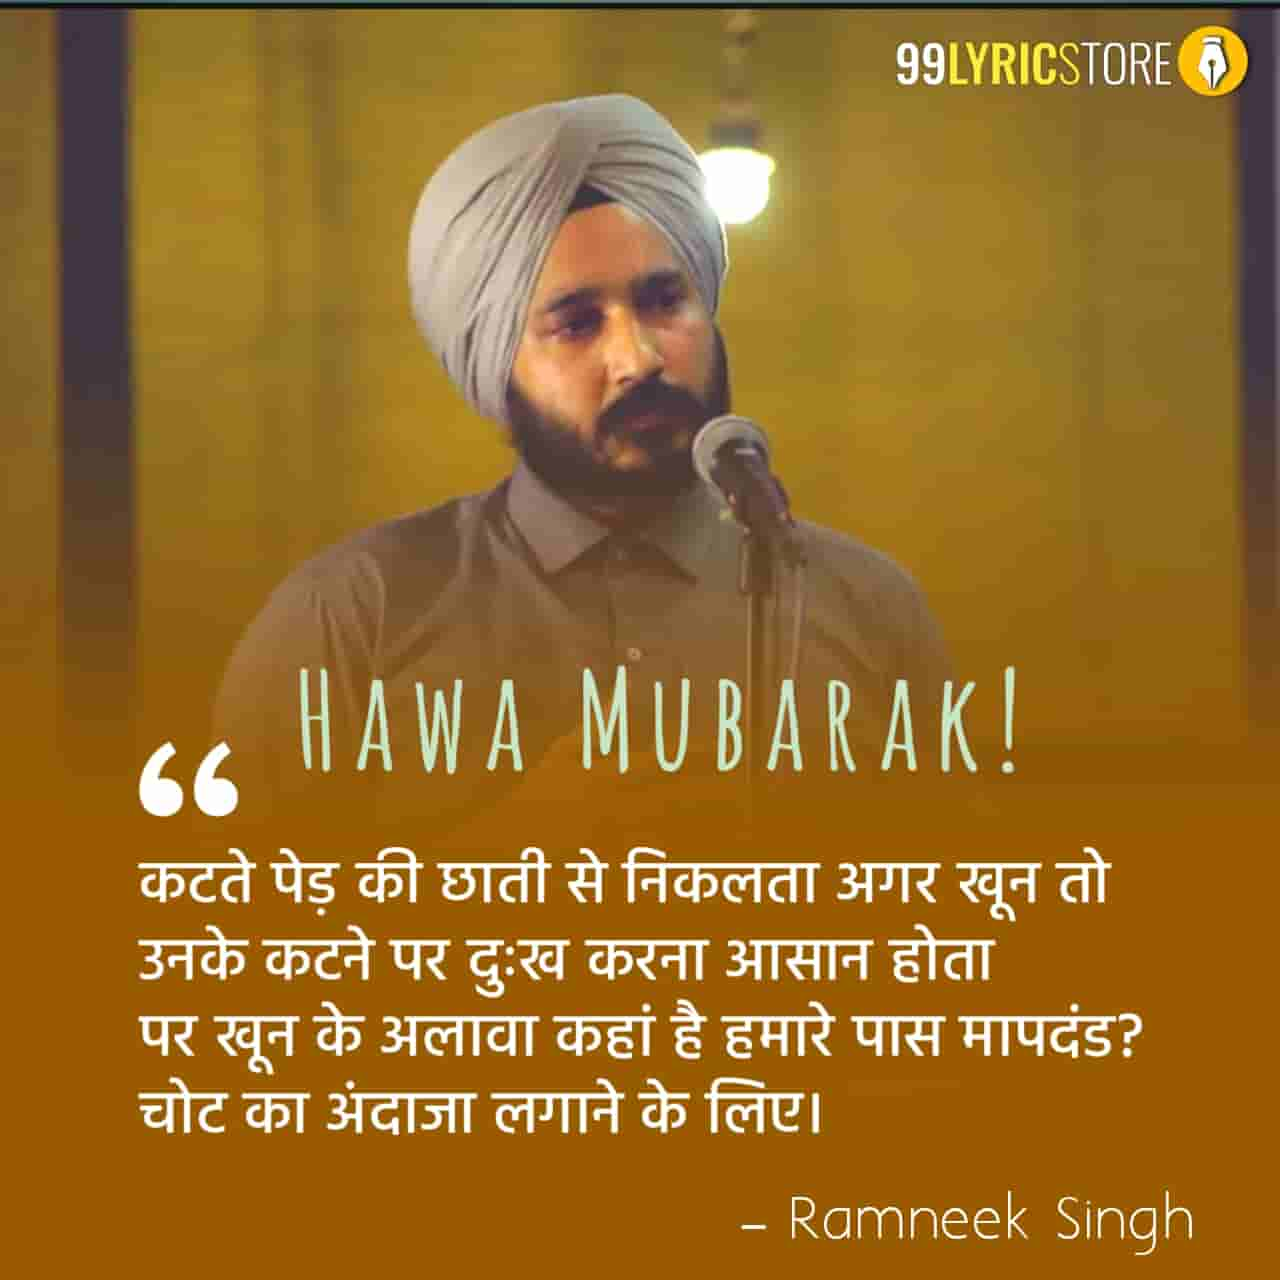 This beautiful Poetry 'Hawa Mubarak' has written by Ramneek Singh.